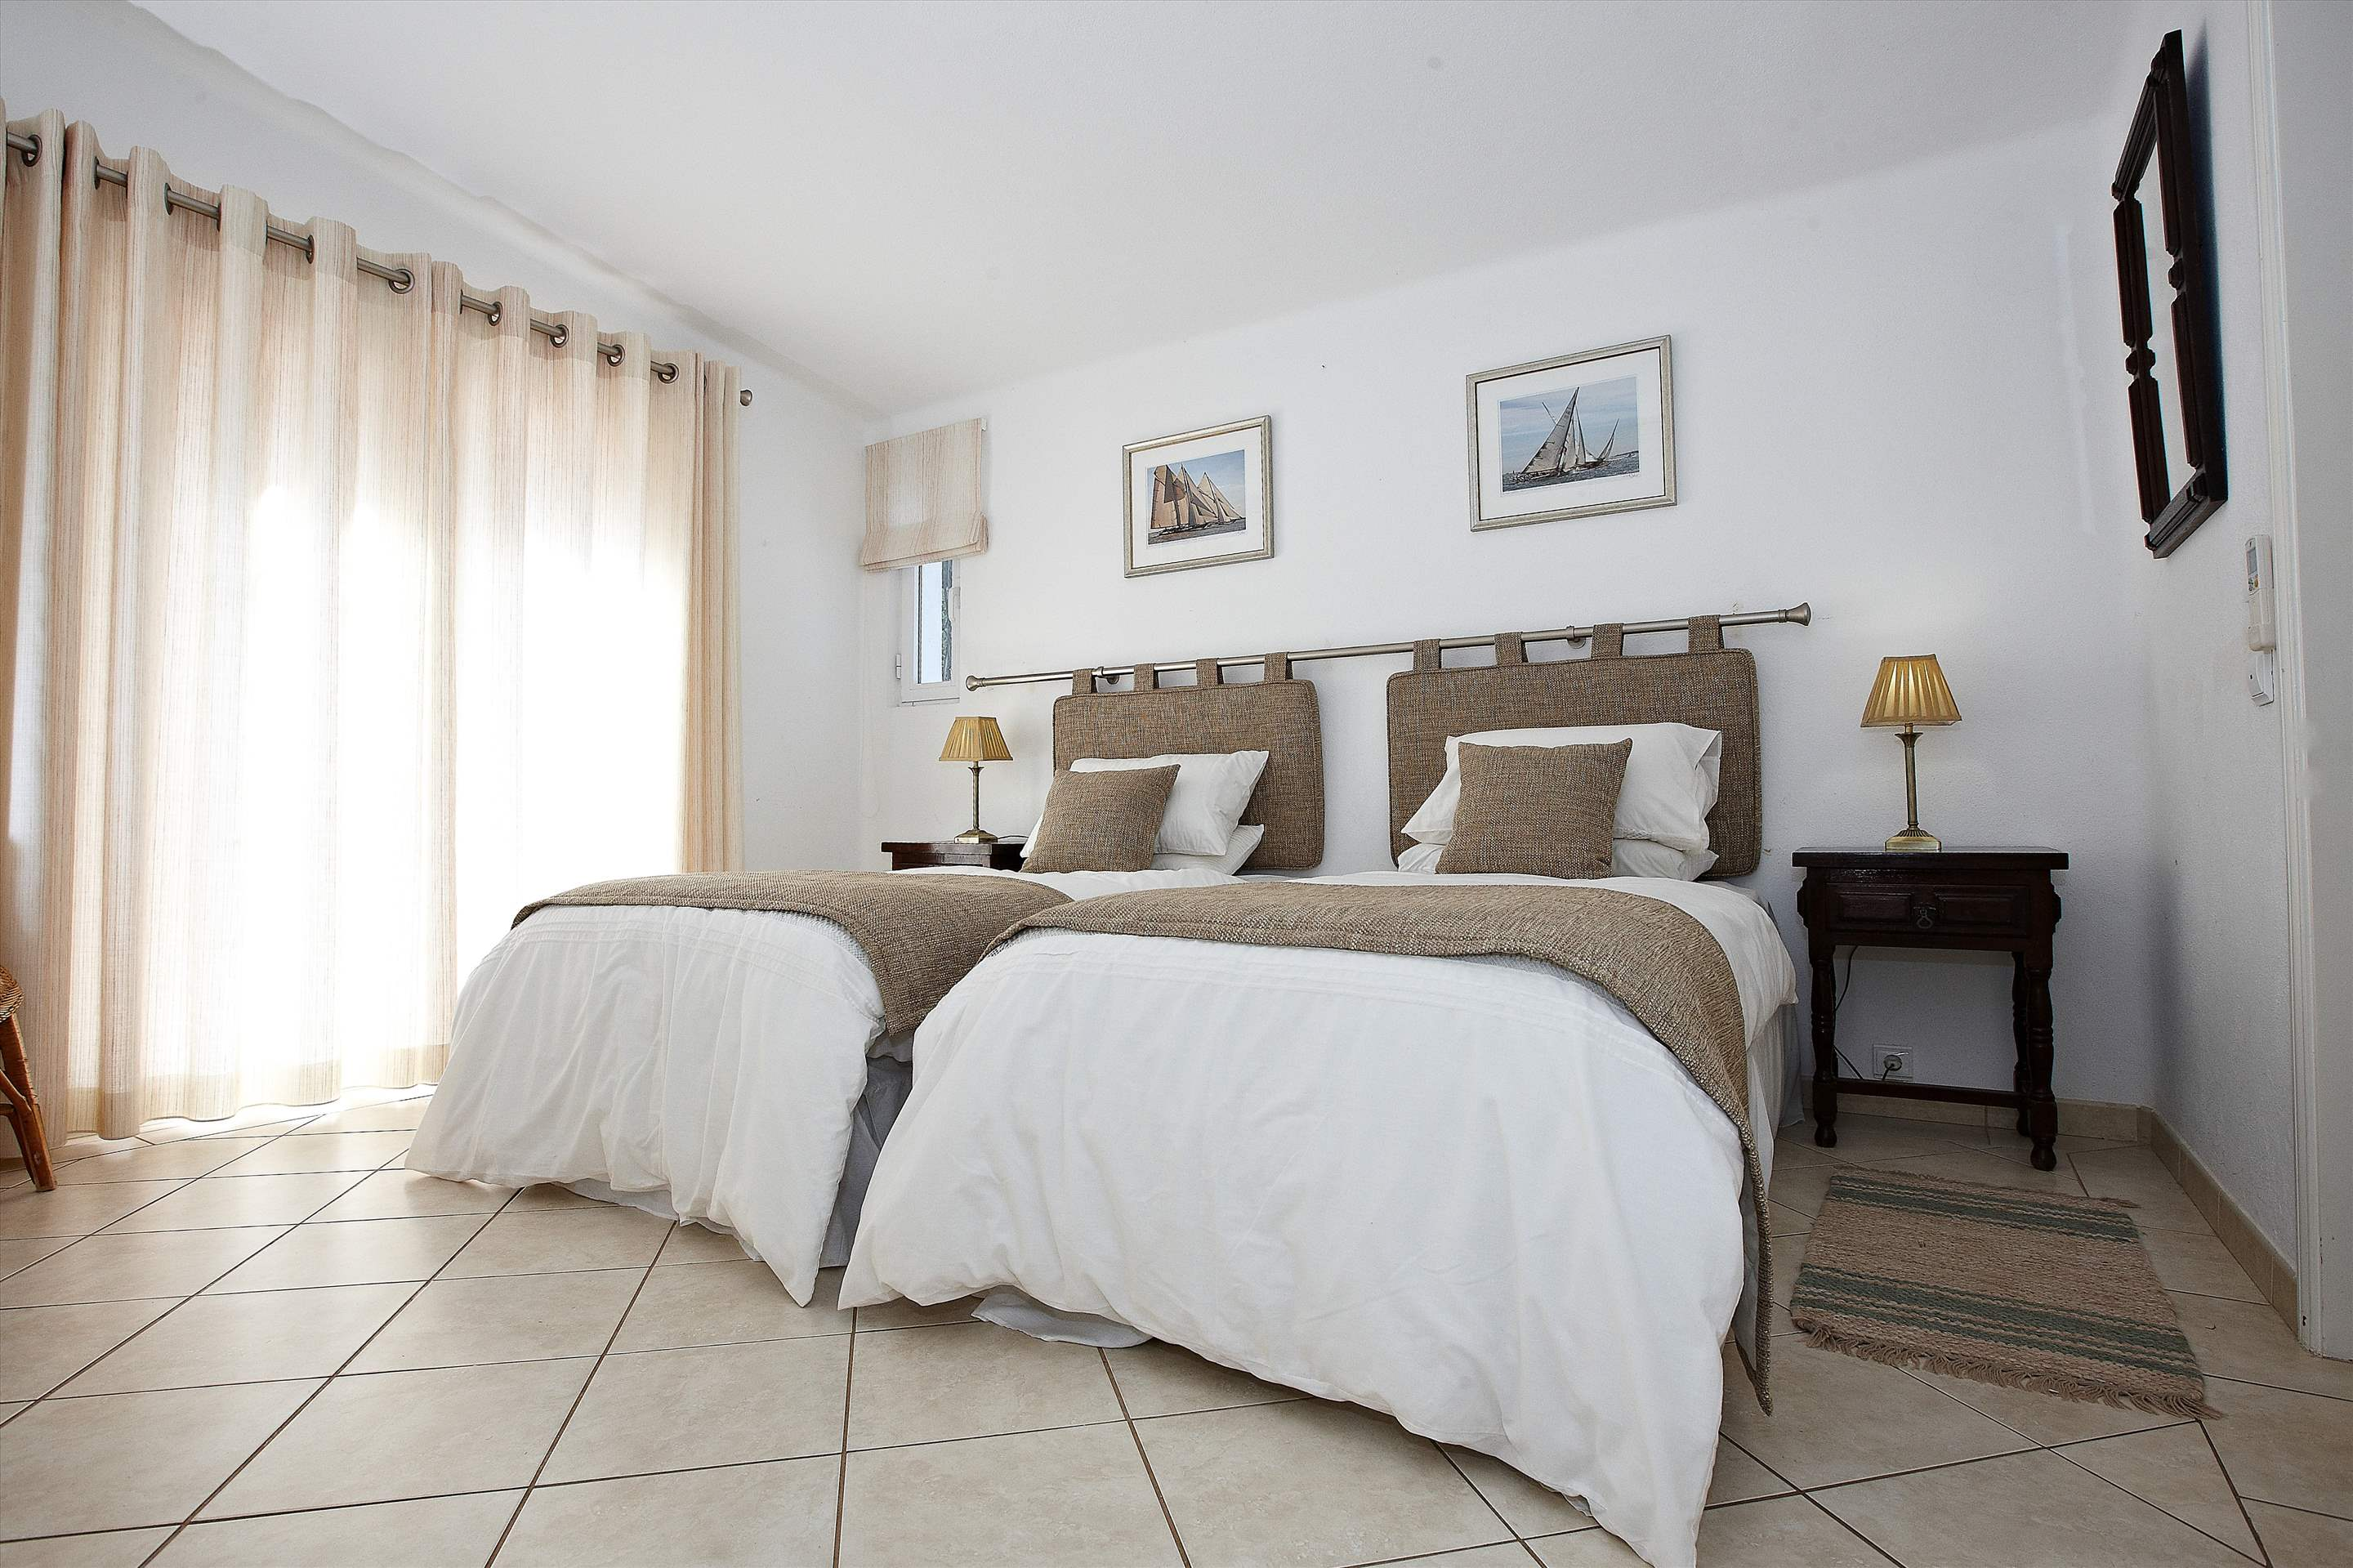 Villa Gabriella, 4 bedroom villa in Vale do Lobo, Algarve Photo #14